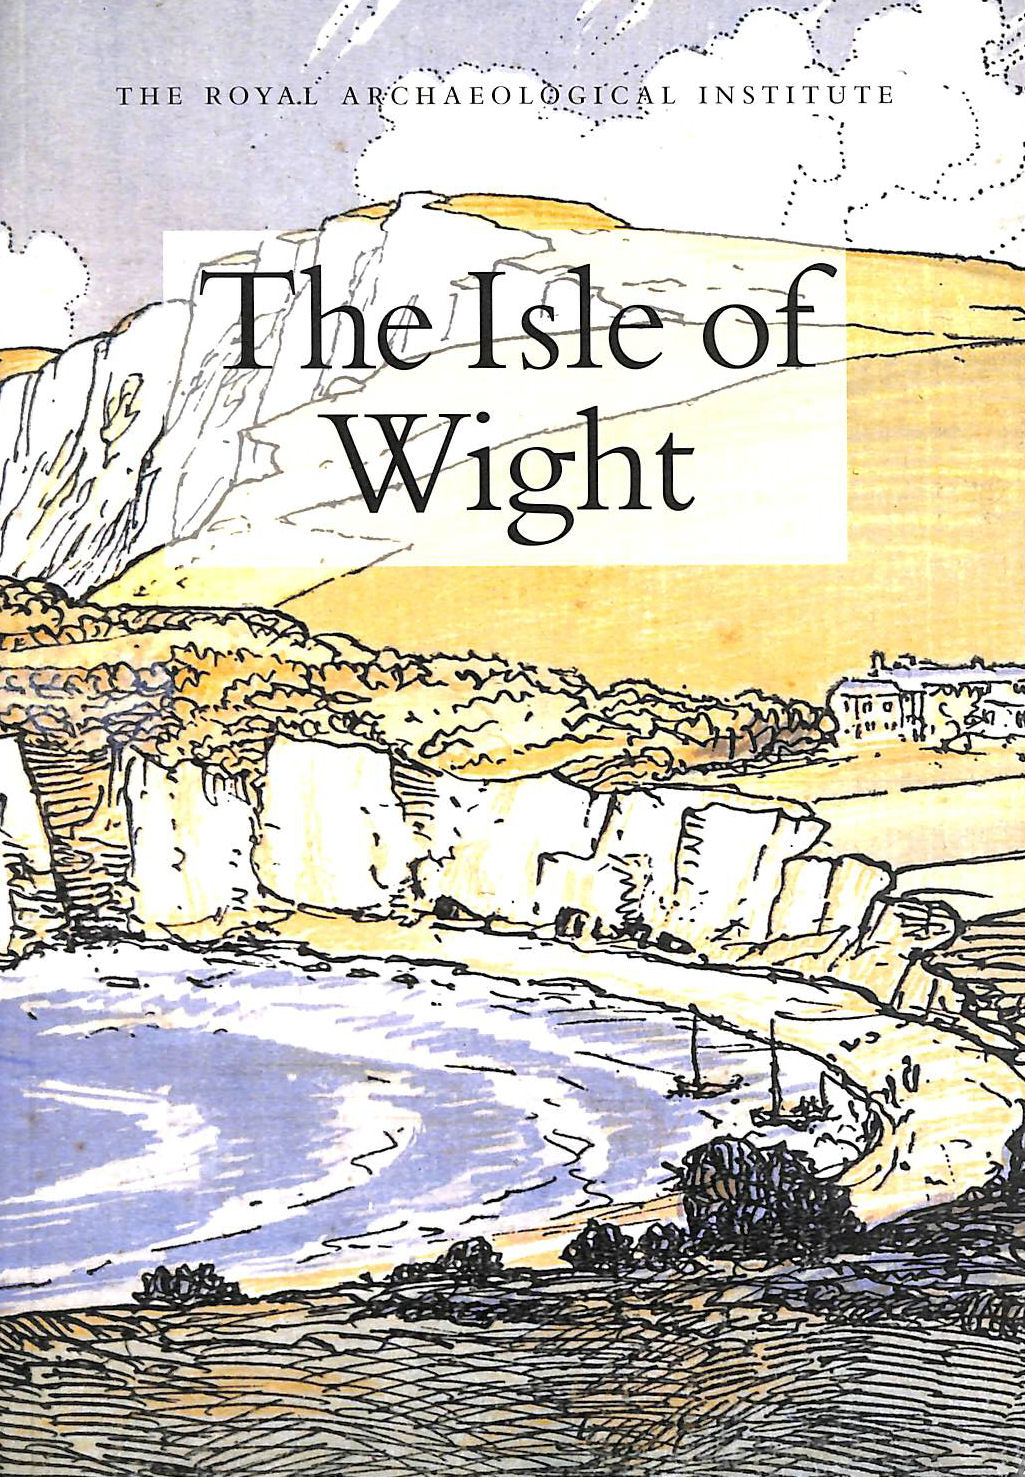 Image for The Isle of Wight: Report and Proceedings of the 152nd Summer Meeting of the Royal Archaeological Institute in 2006